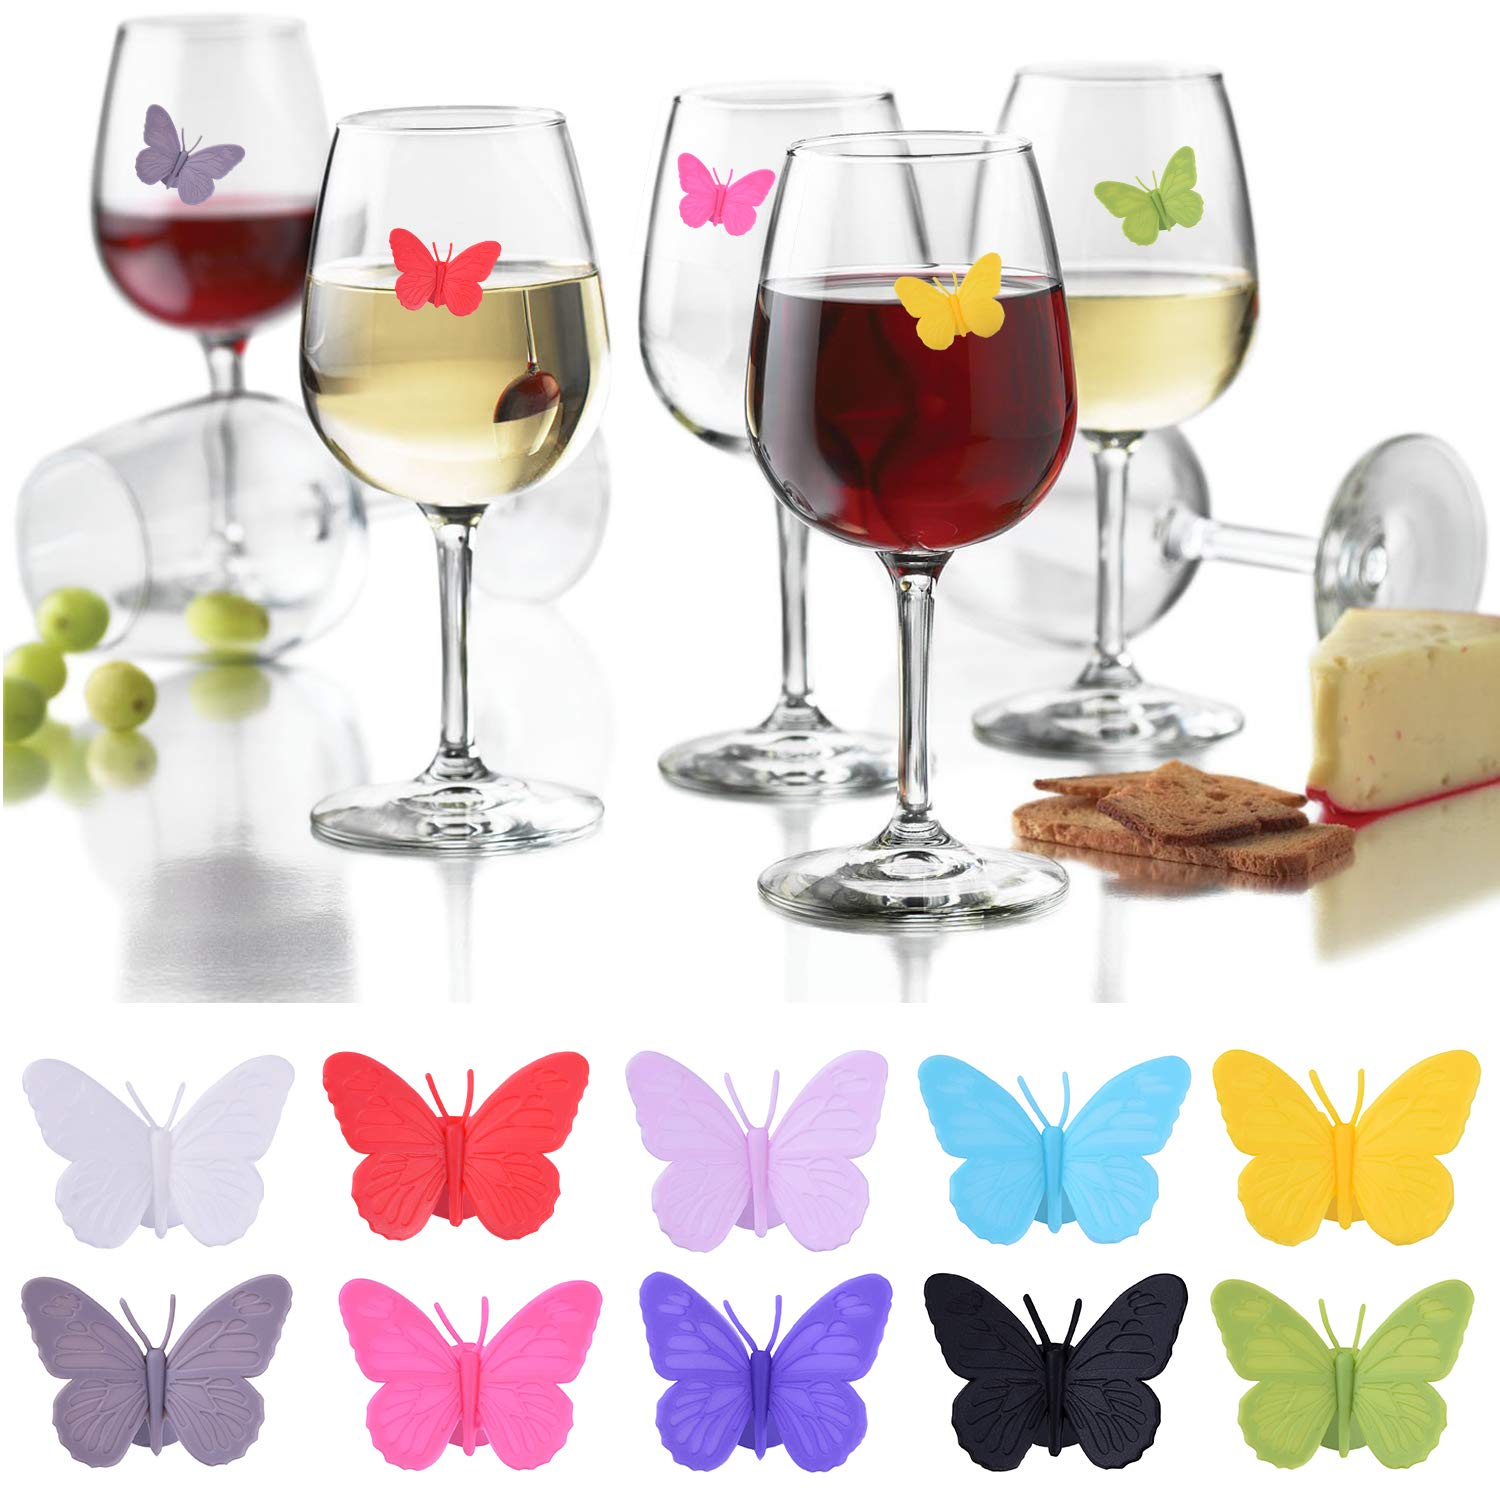 Wine Glass Charms Set of 10 Silicone Drink Glass Markers &Wine Charm Tags with Suction Cup for Stemless Glasses, Beer Mugs & More (Butterfly assorted) by ALYC (Image #2)